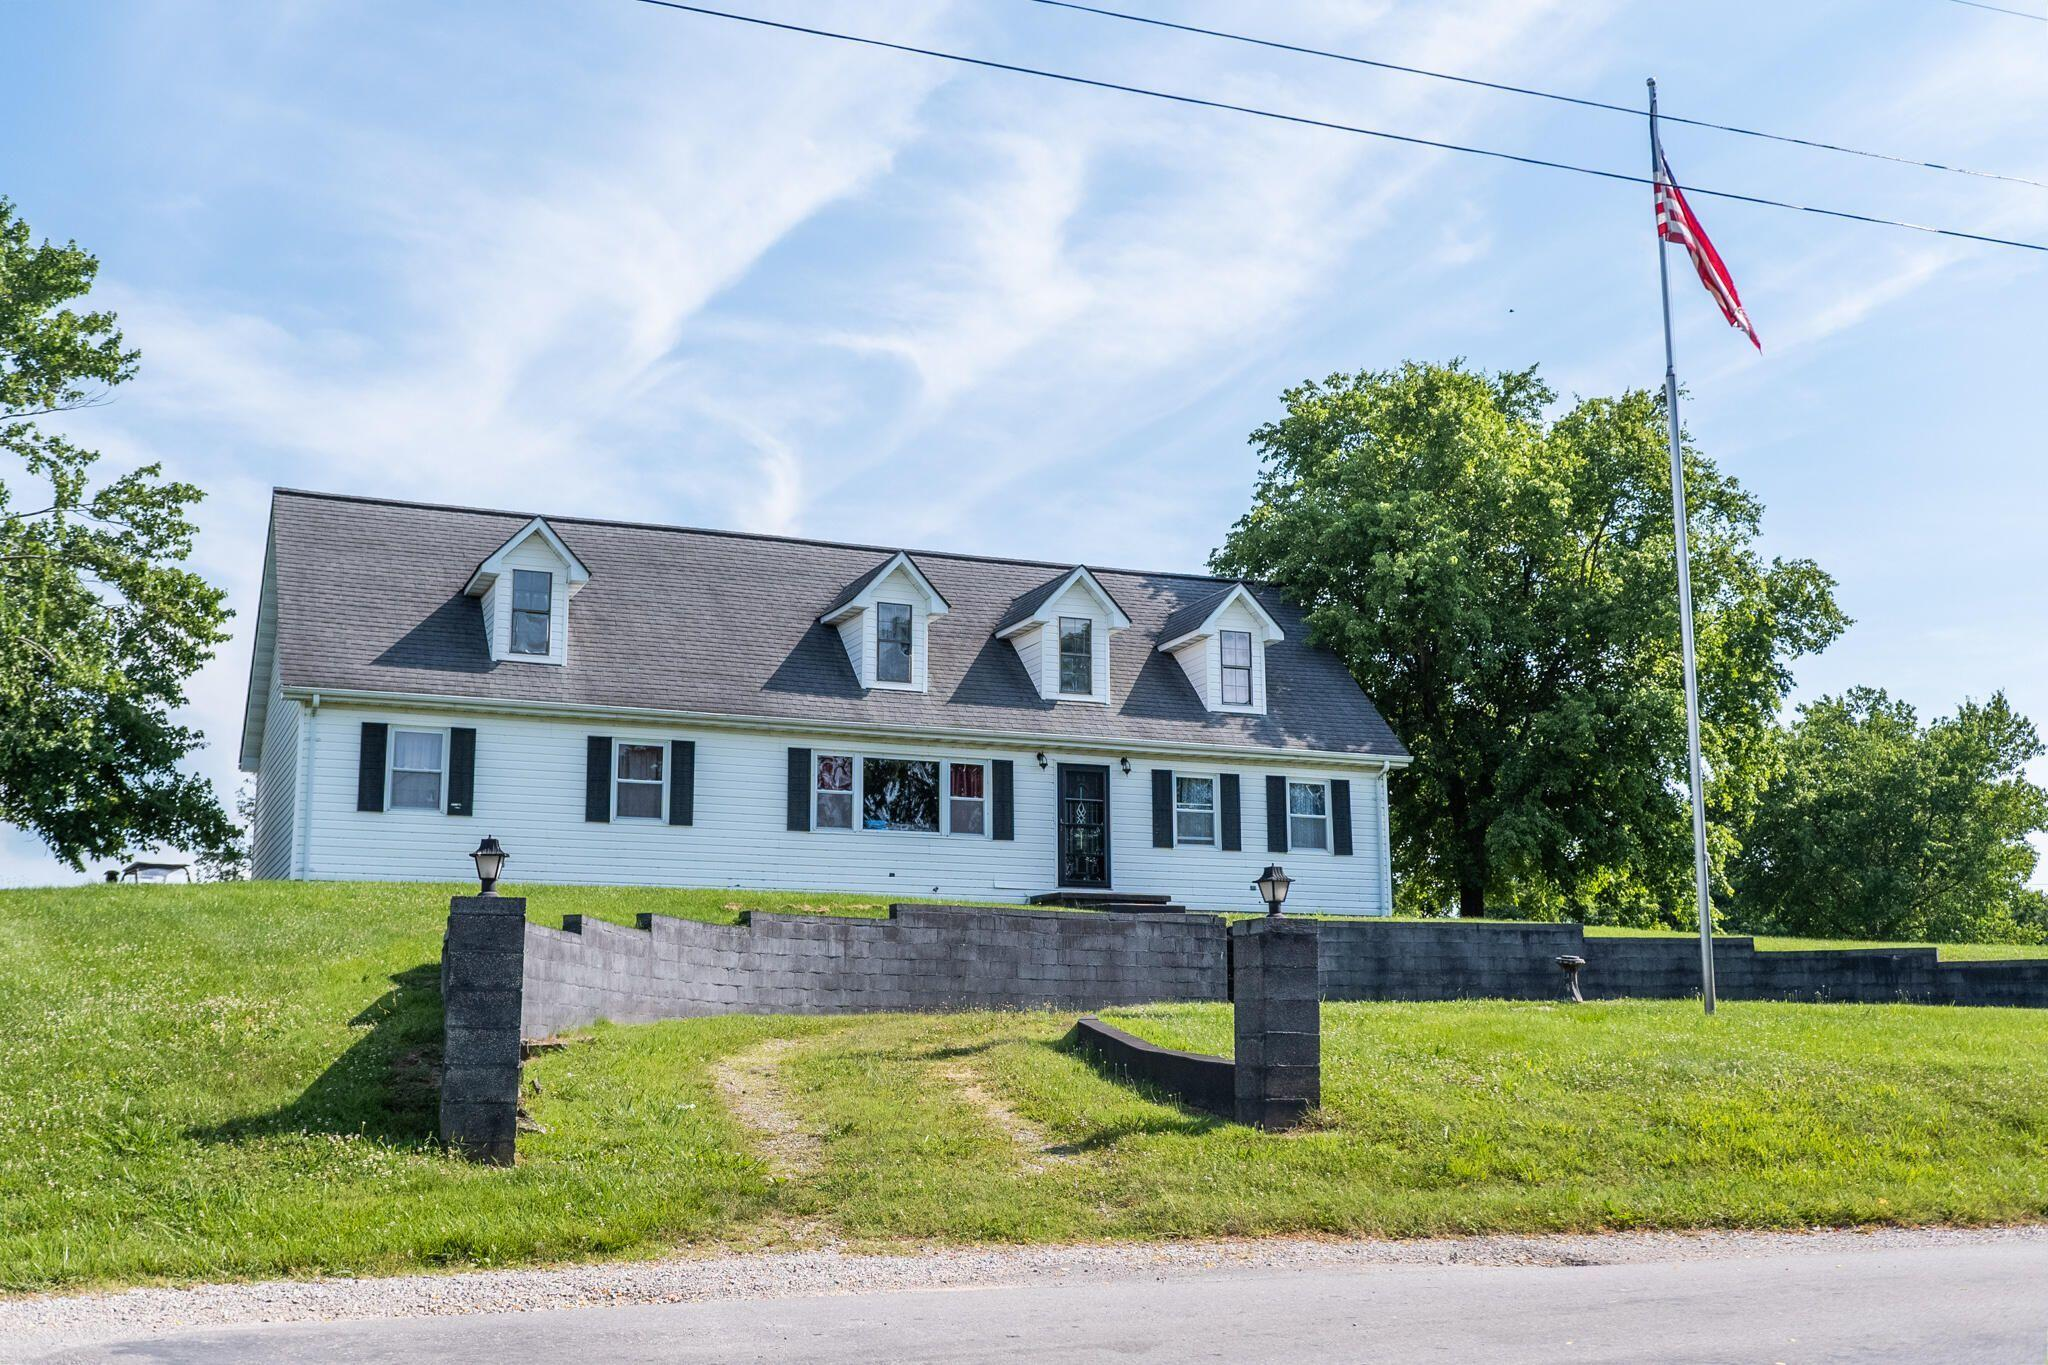 570 Hwy 1009 N, Monticello, KY 42633